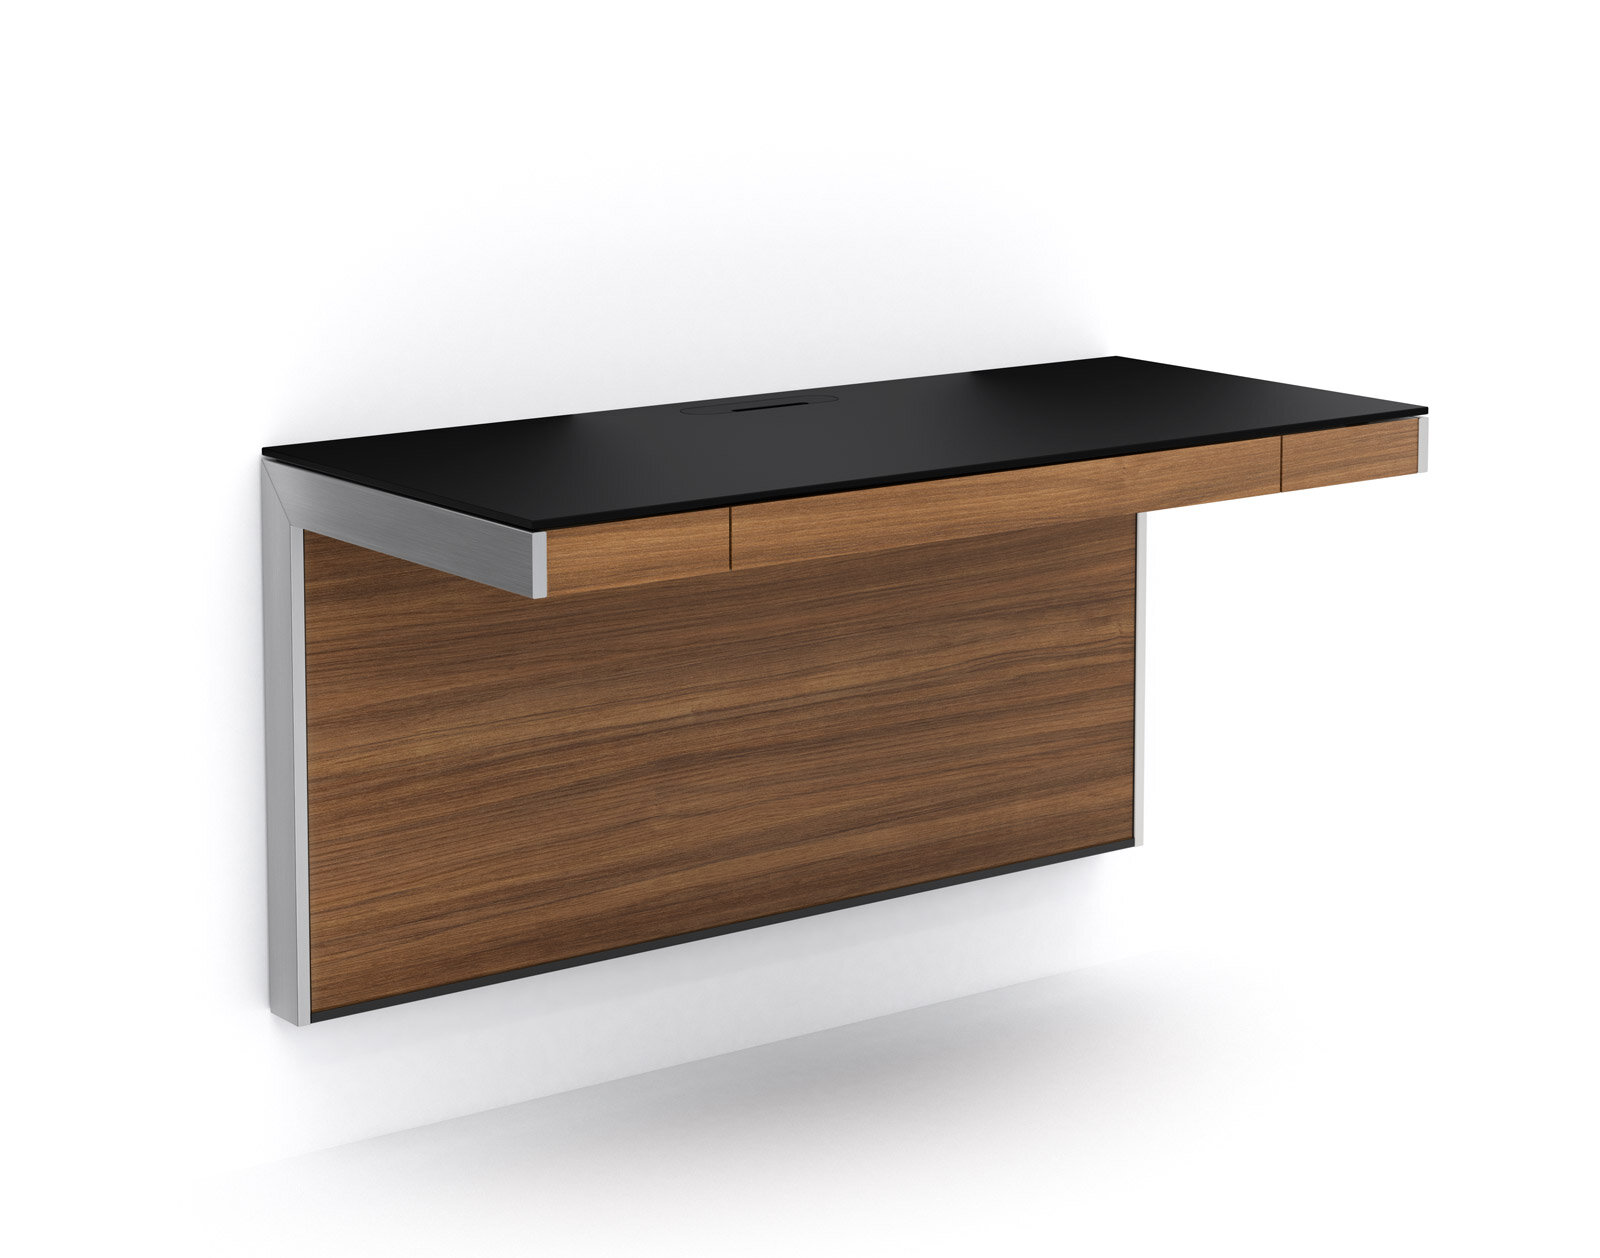 Sequel Wall Mounted Floating Desk & Reviews